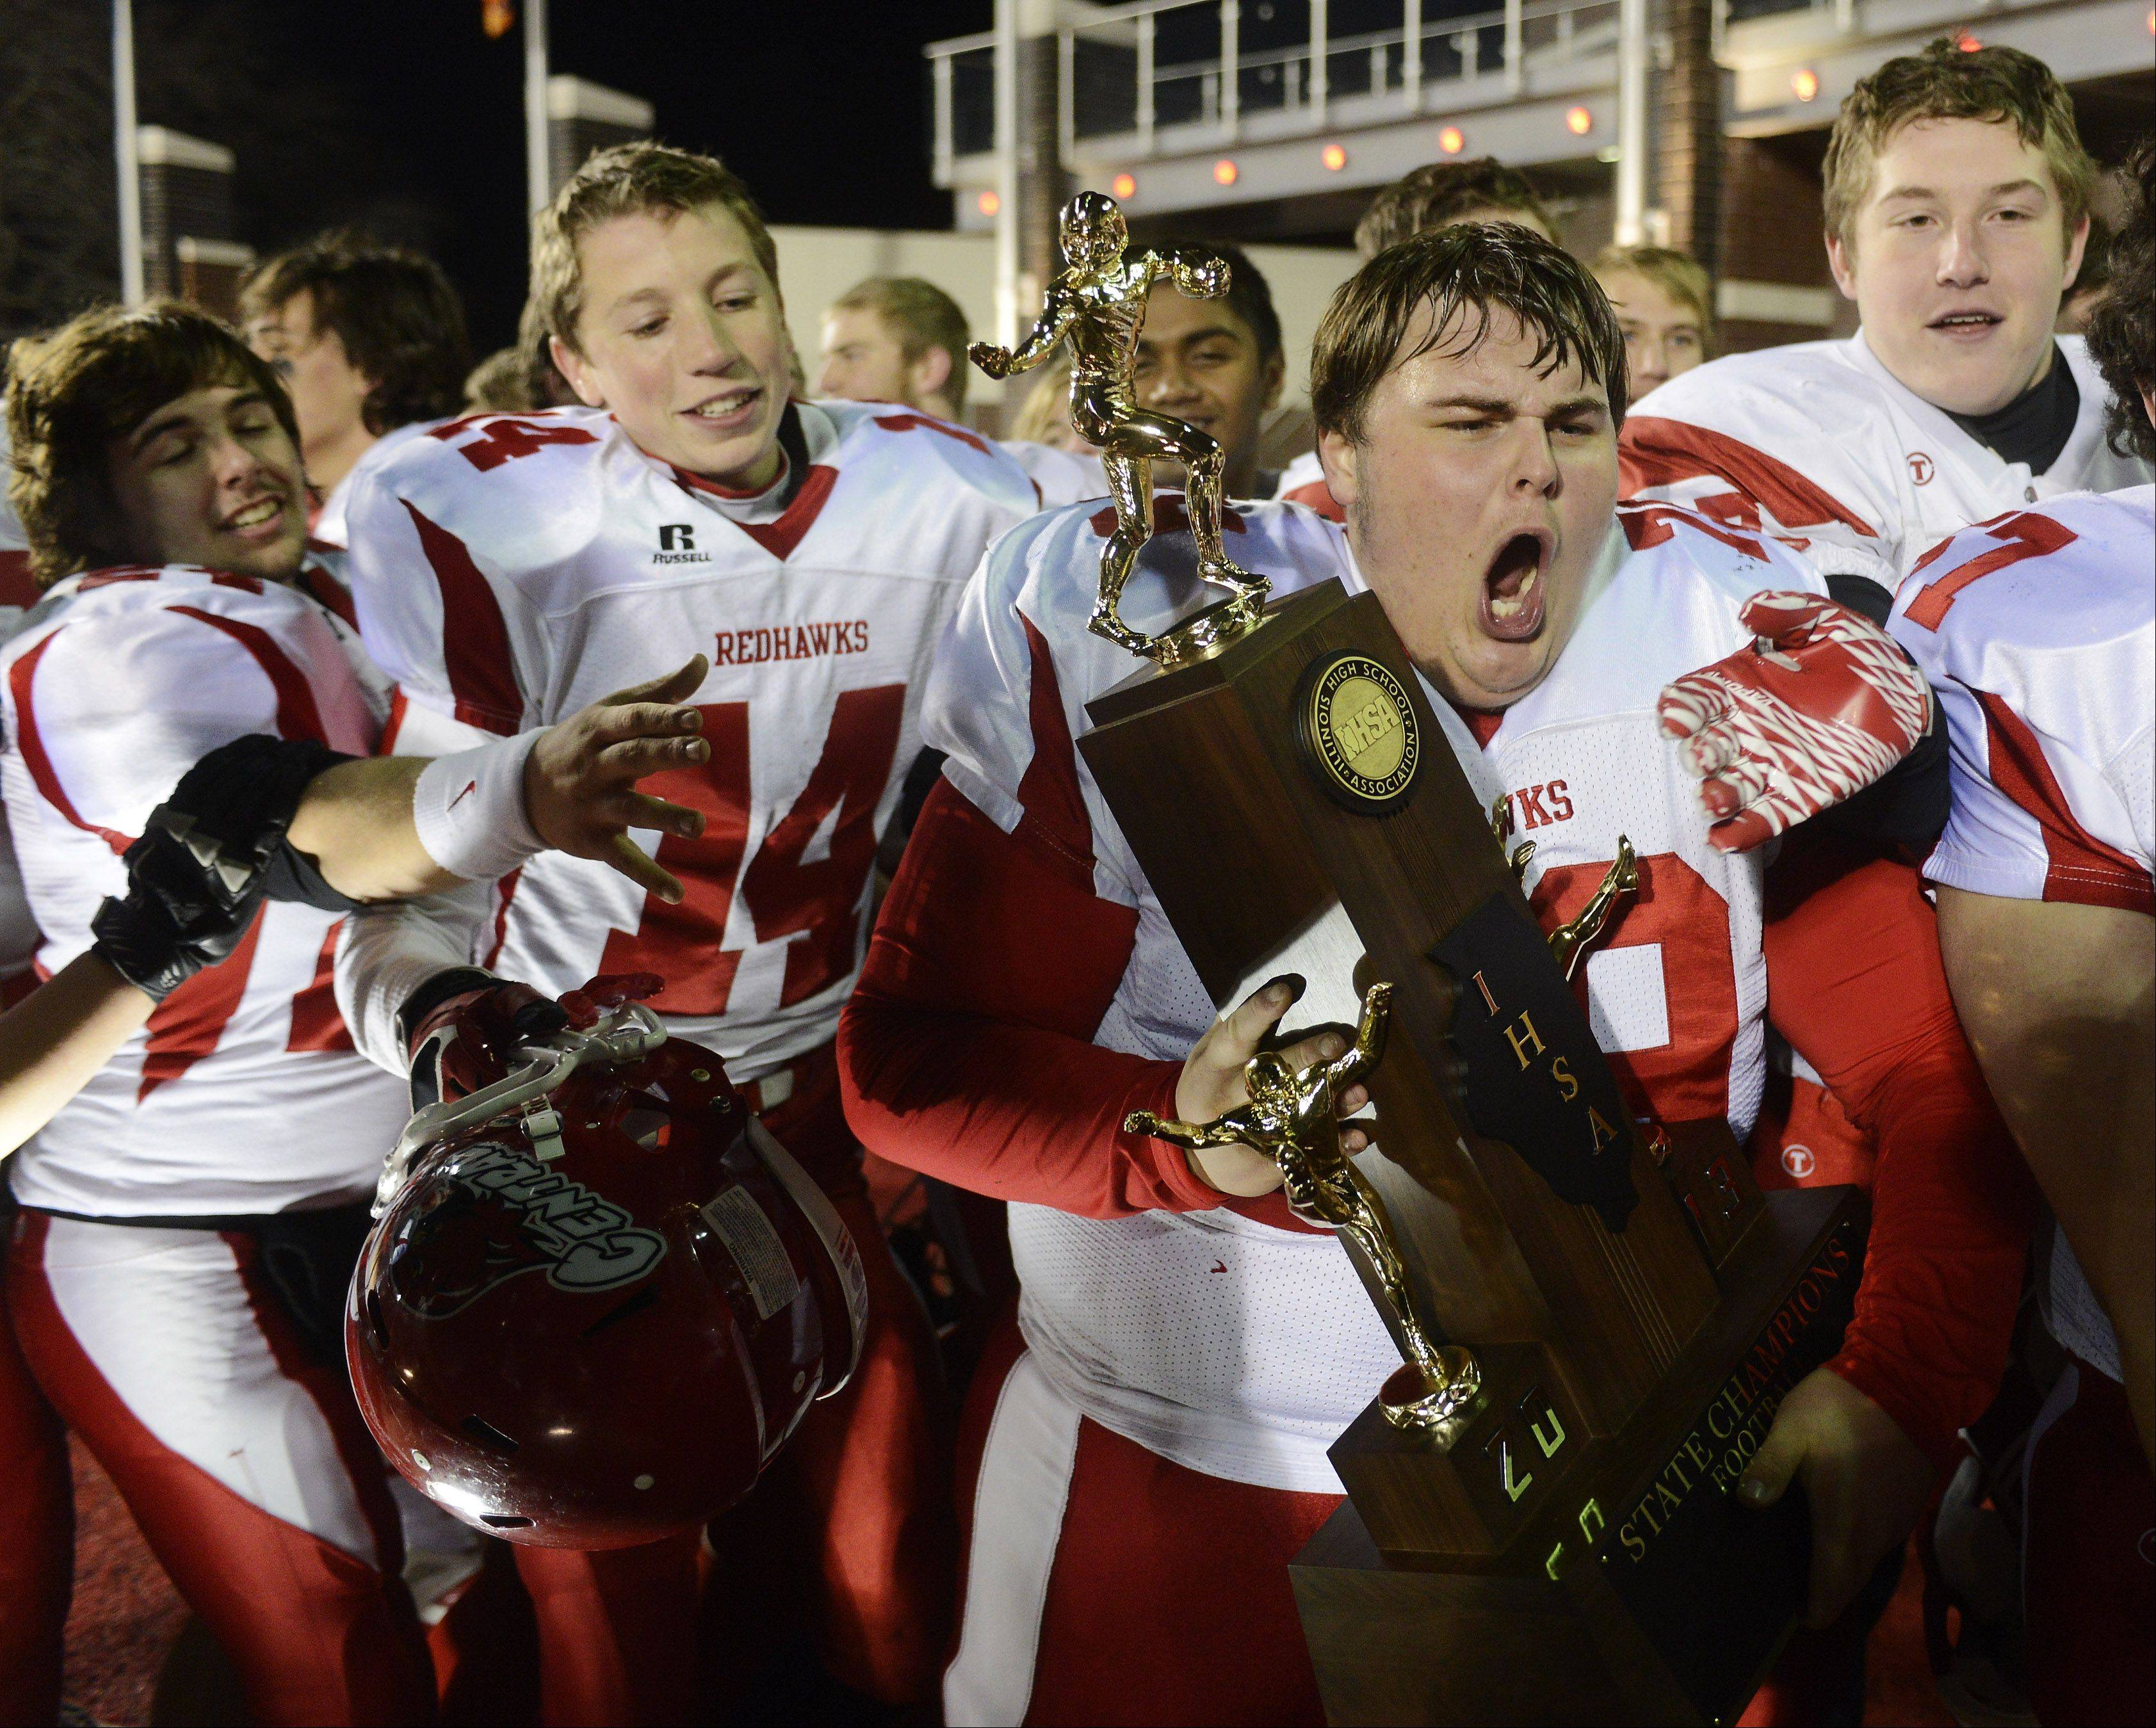 Images: Naperville Central vs. Loyola football